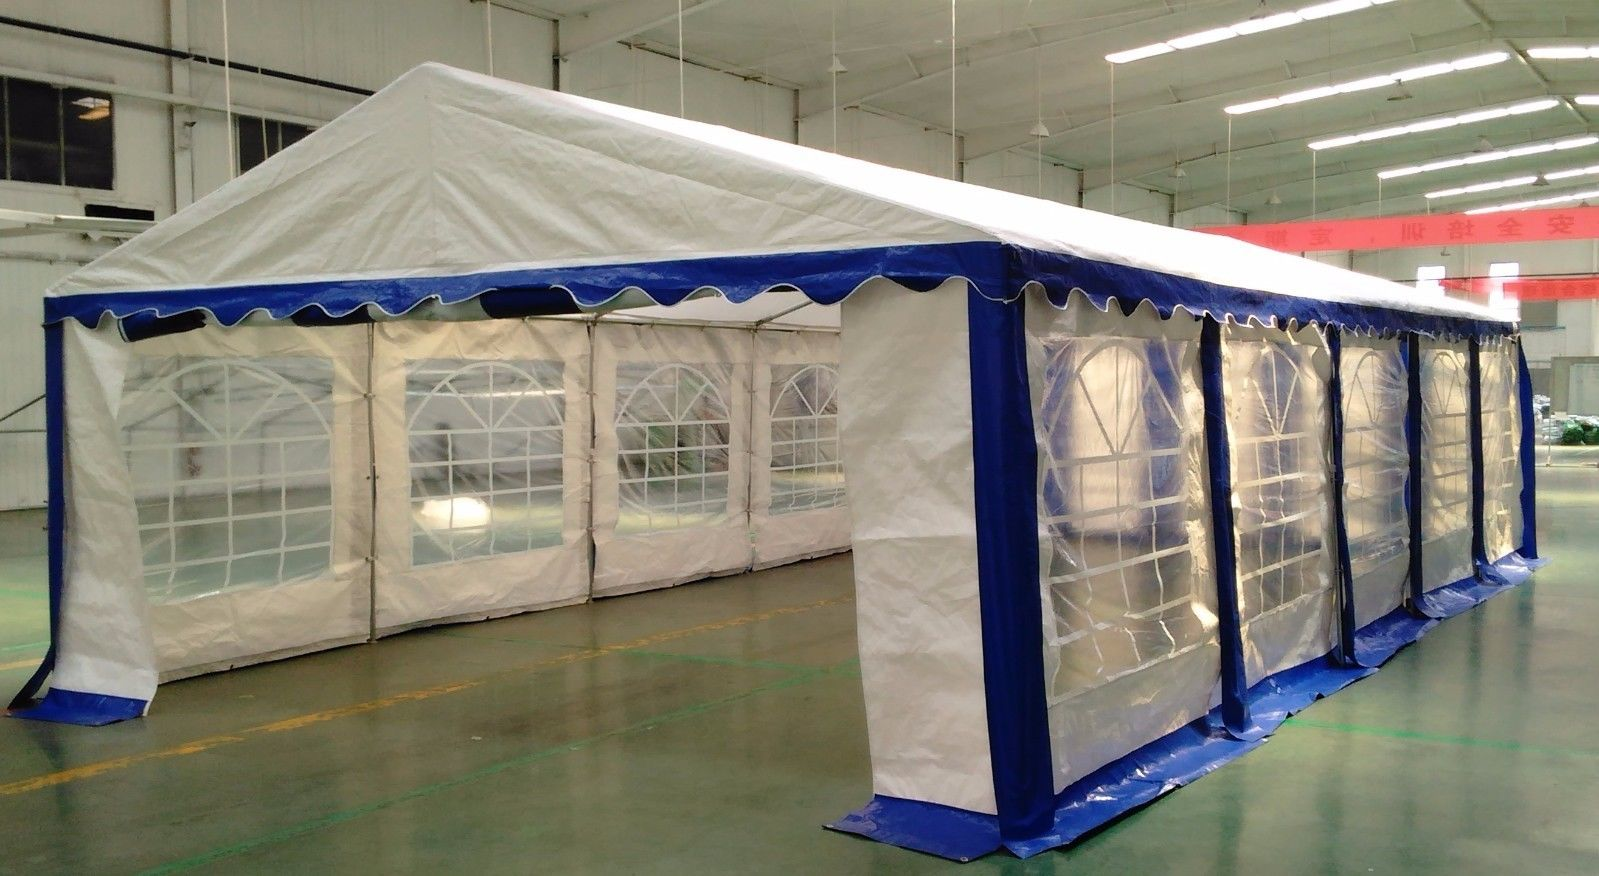 15 x 30 Heavy Duty White and Blue Party Tent Canopy : tent heavy duty - memphite.com